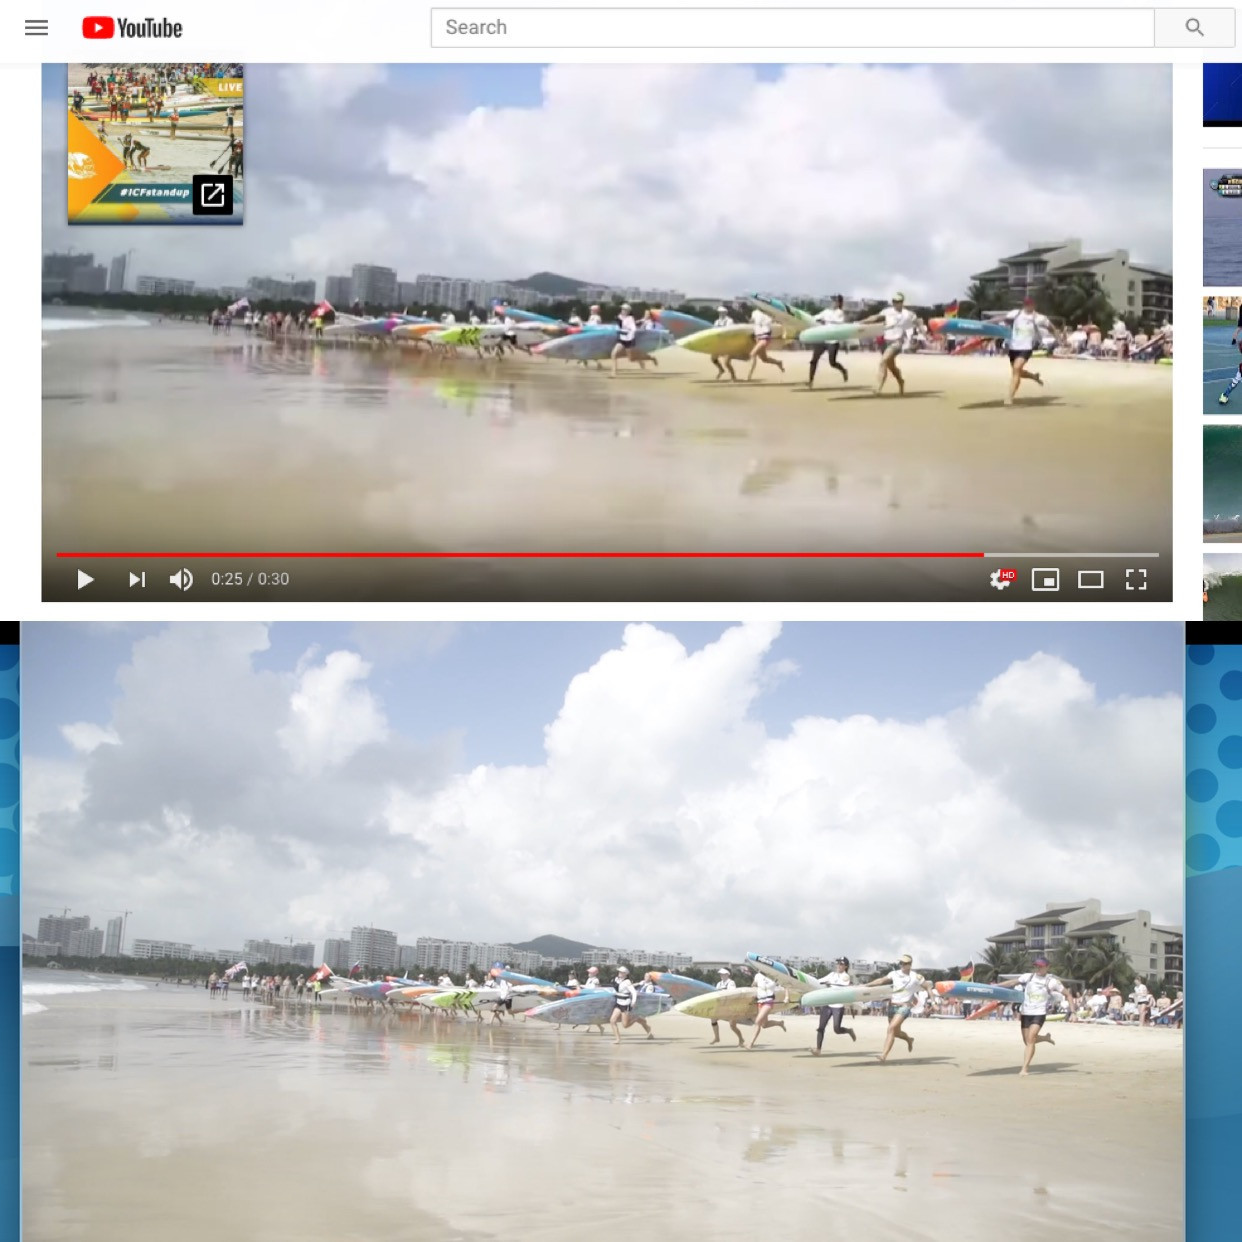 The footage from the ICF's SUP World Championship promotional video ©YouTube